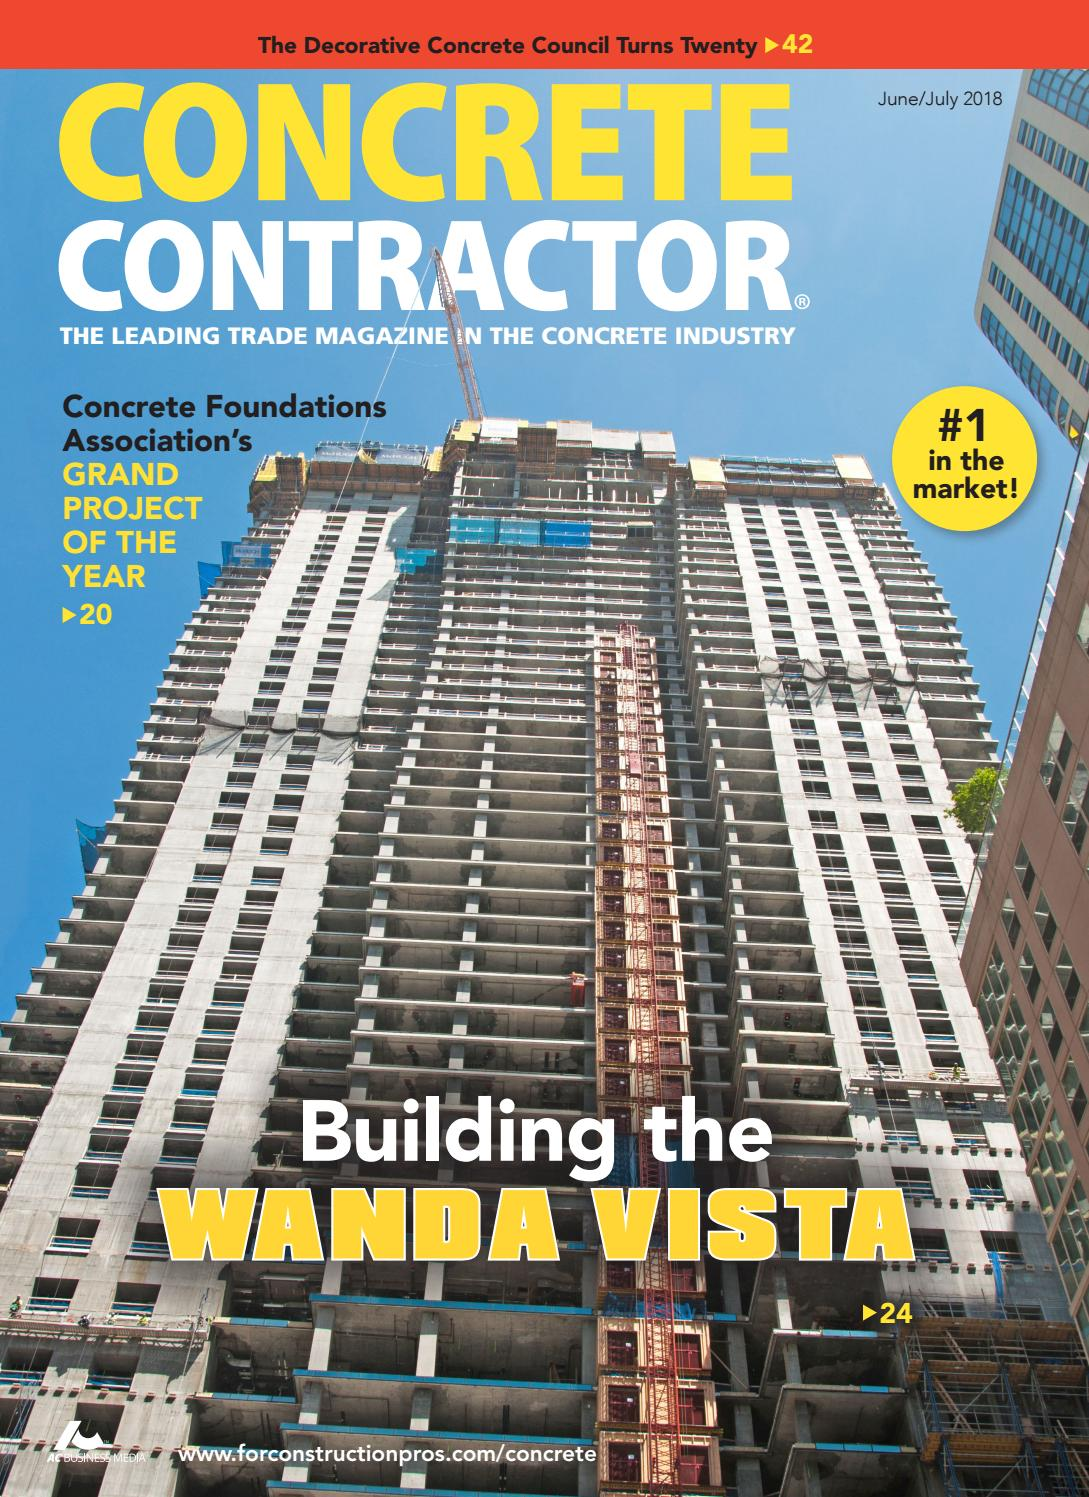 Concrete Contractor June/July 2018 by ForConstructionPros